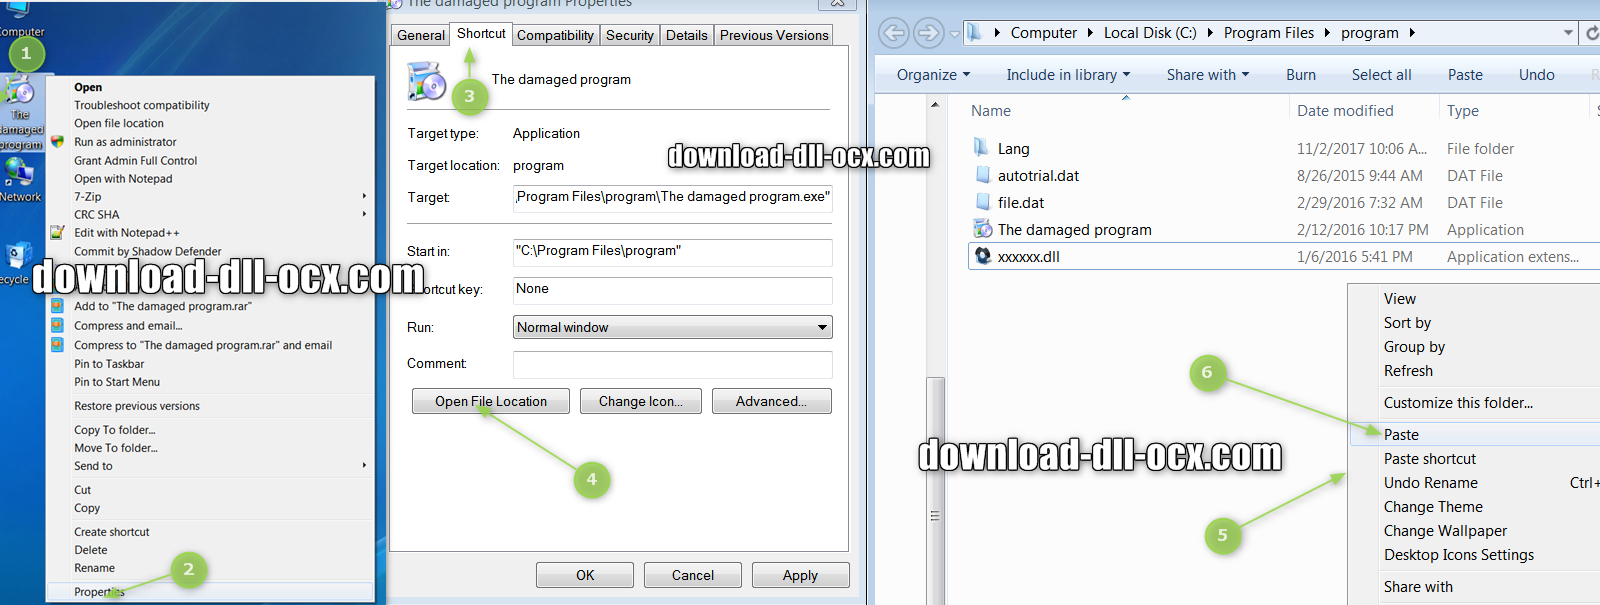 how to install jgedaol.dll file? for fix missing